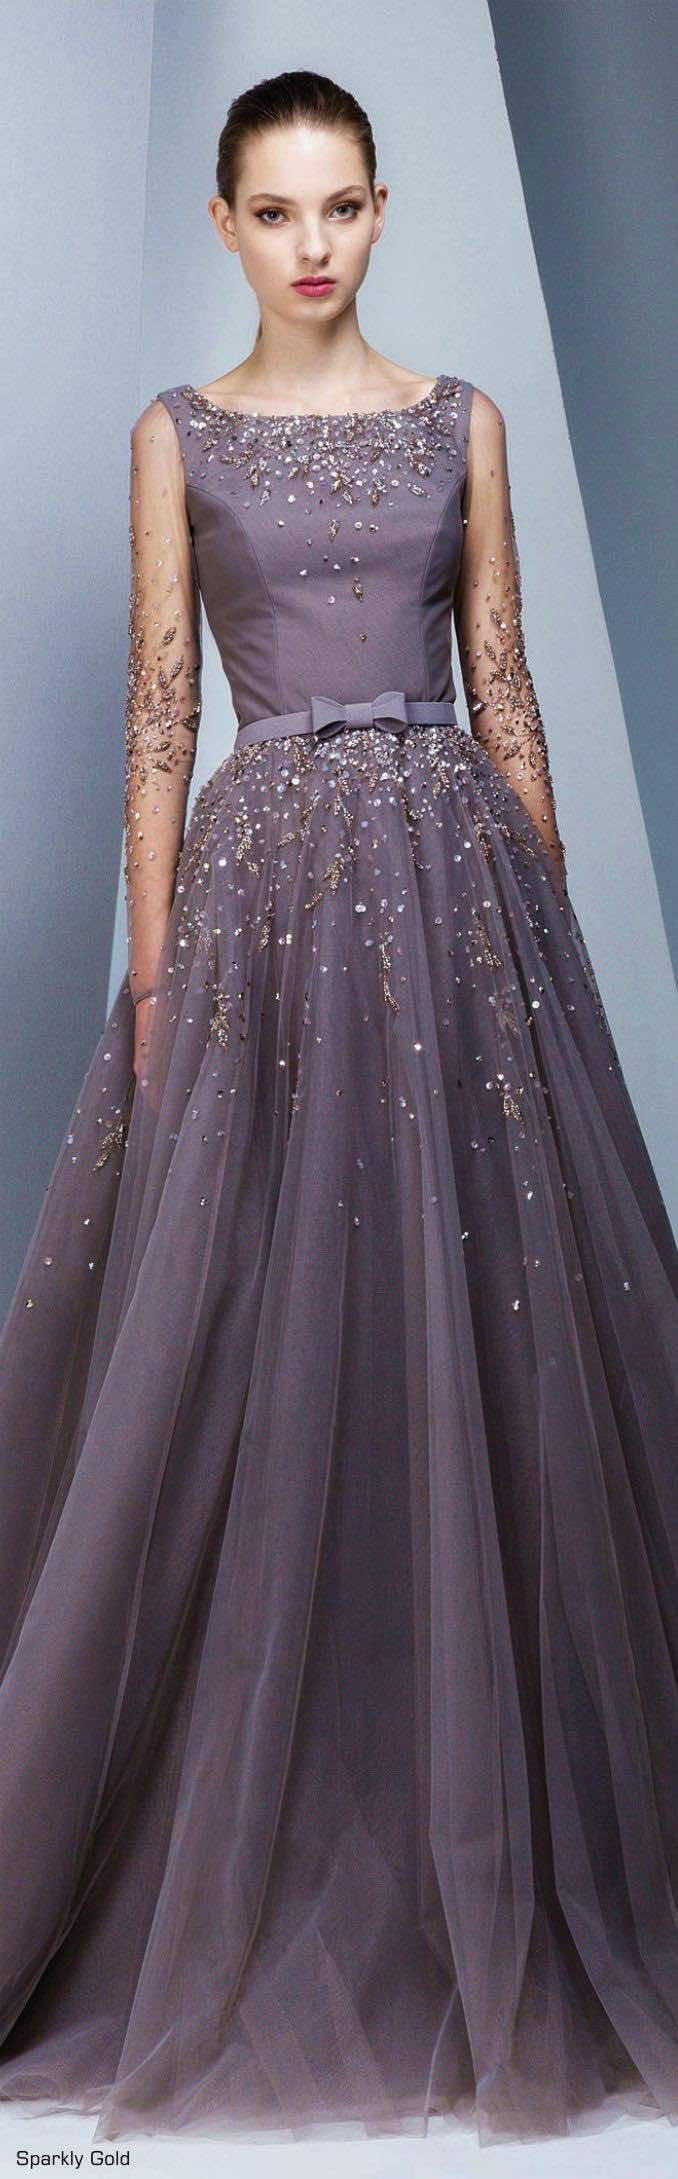 purple-wedding-ideas-24-12042015-km